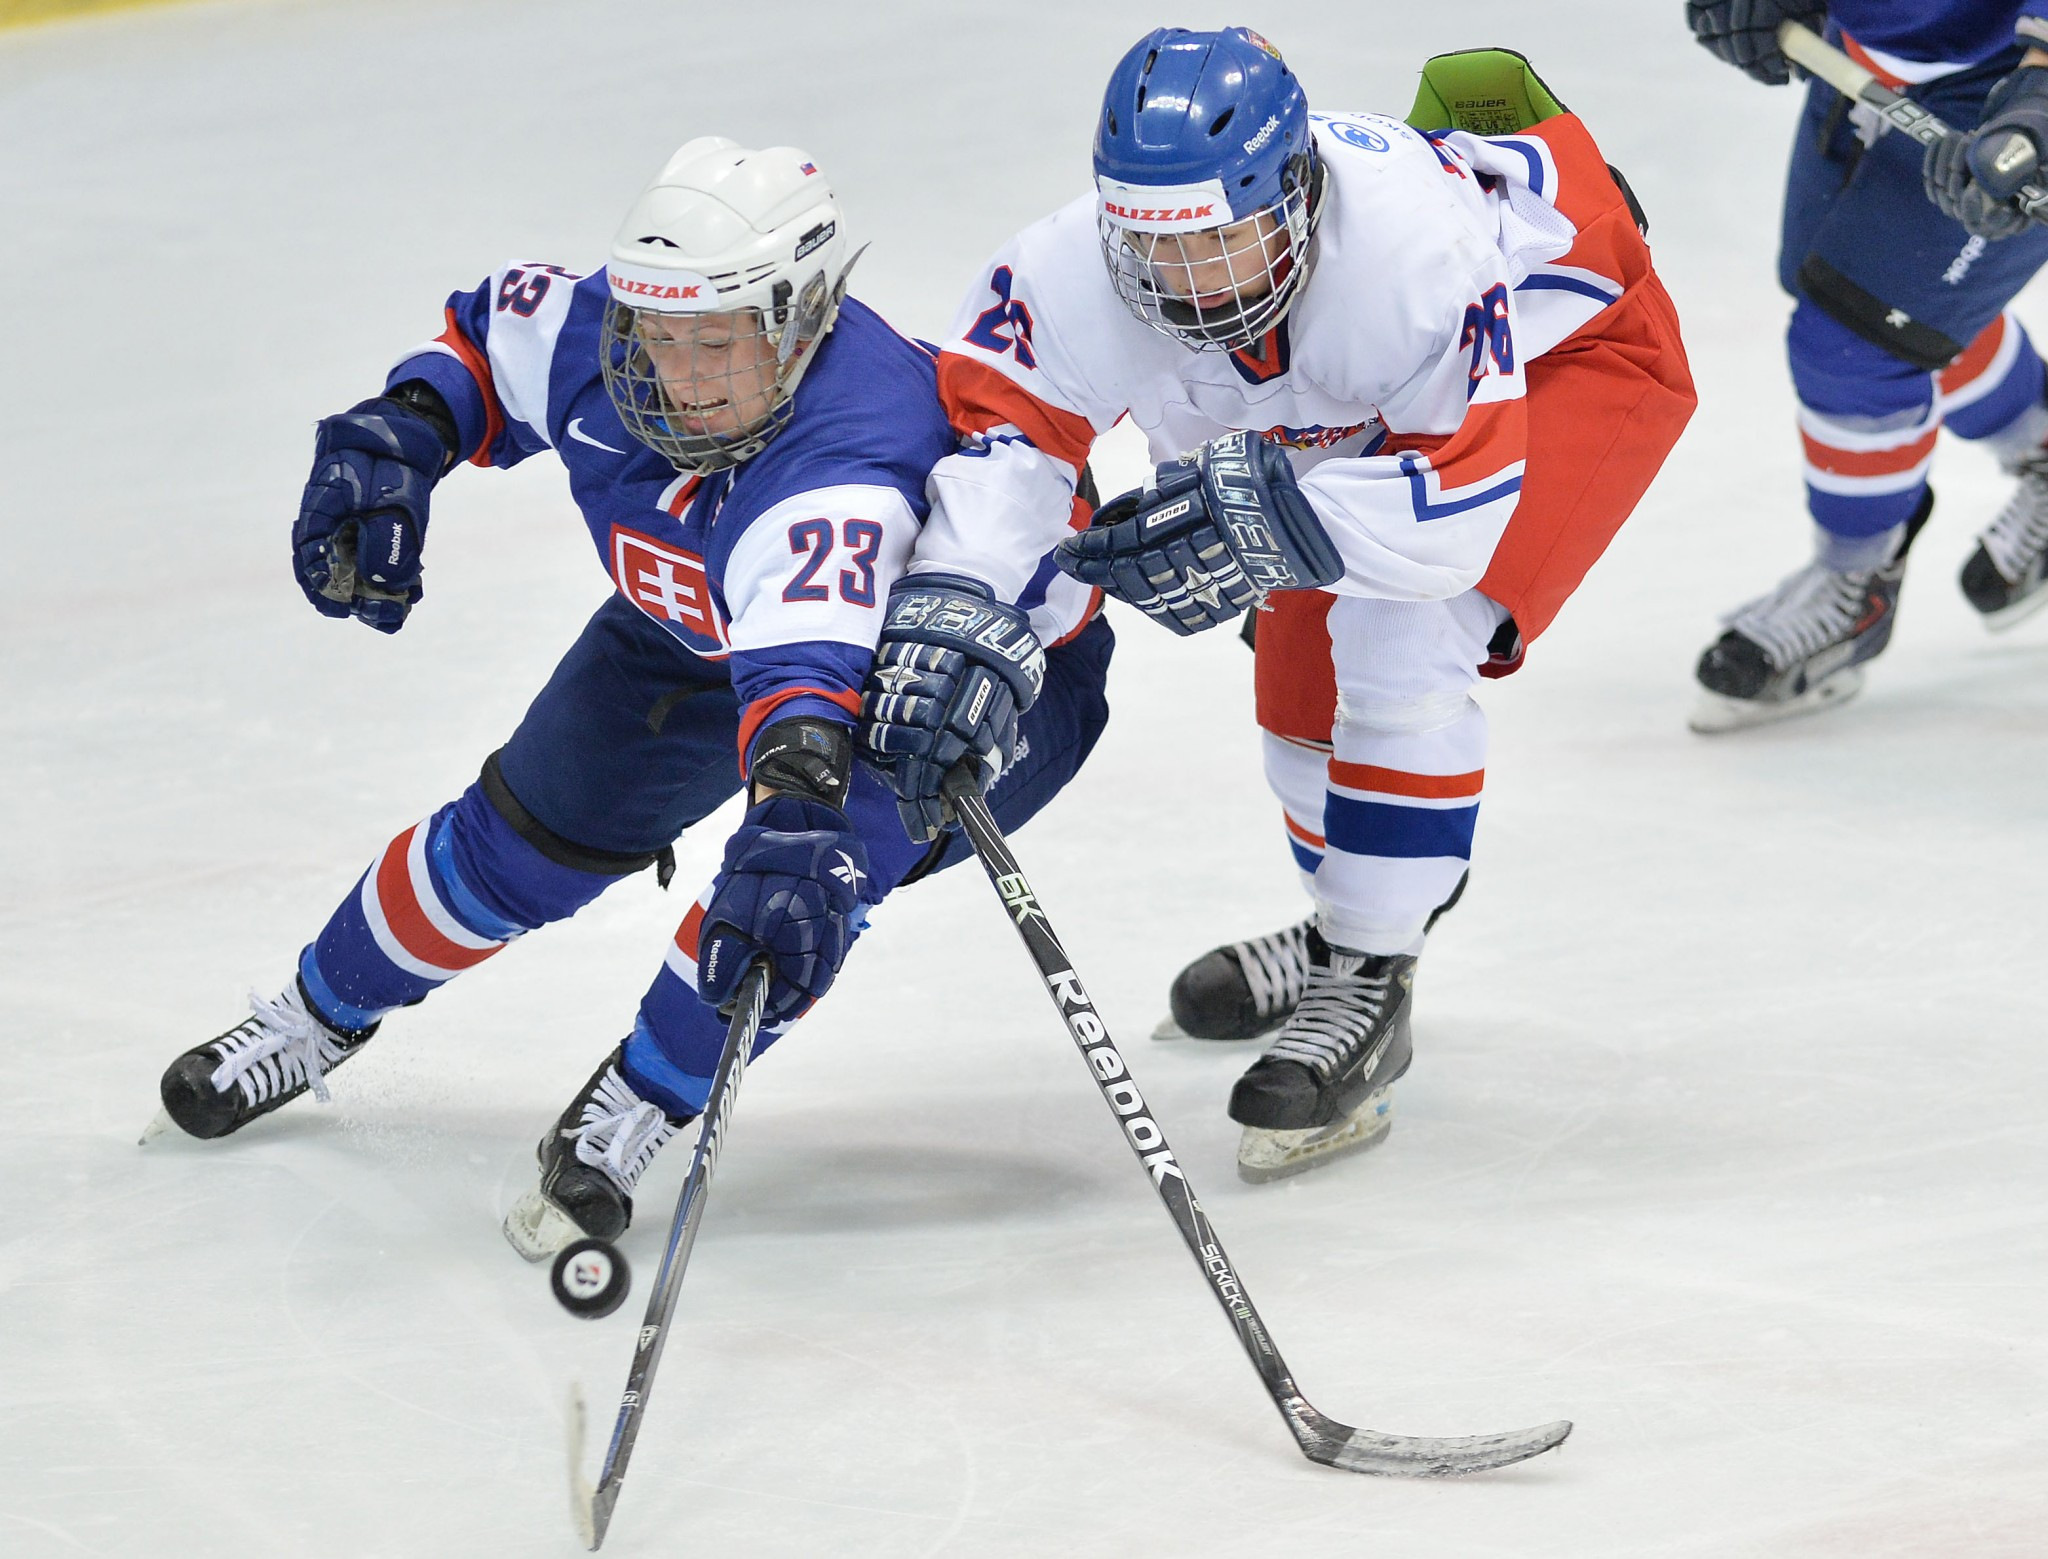 NBC Sports have announced they will broadcast coverage of the IPC Ice Sledge Hockey World Championships A-Pool event ©Getty Images